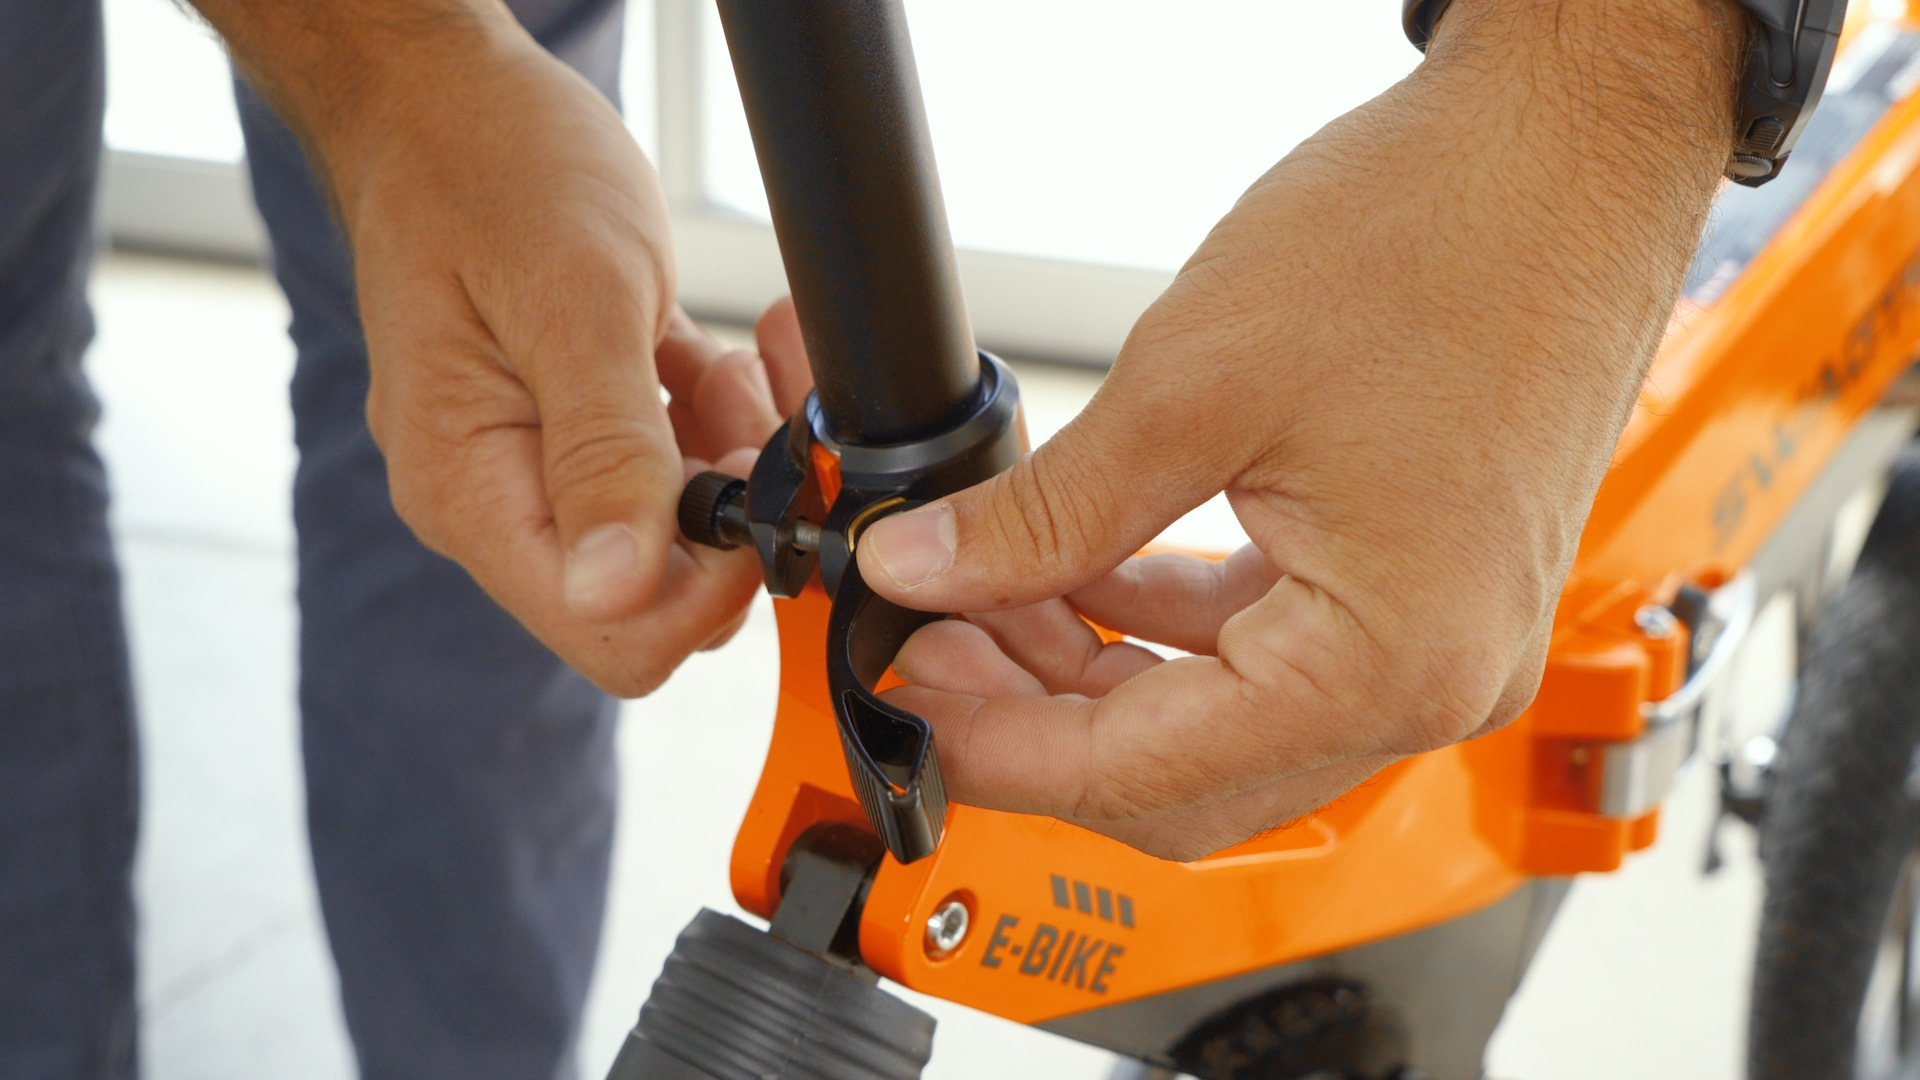 Closeup of man tightening the seat clamp.